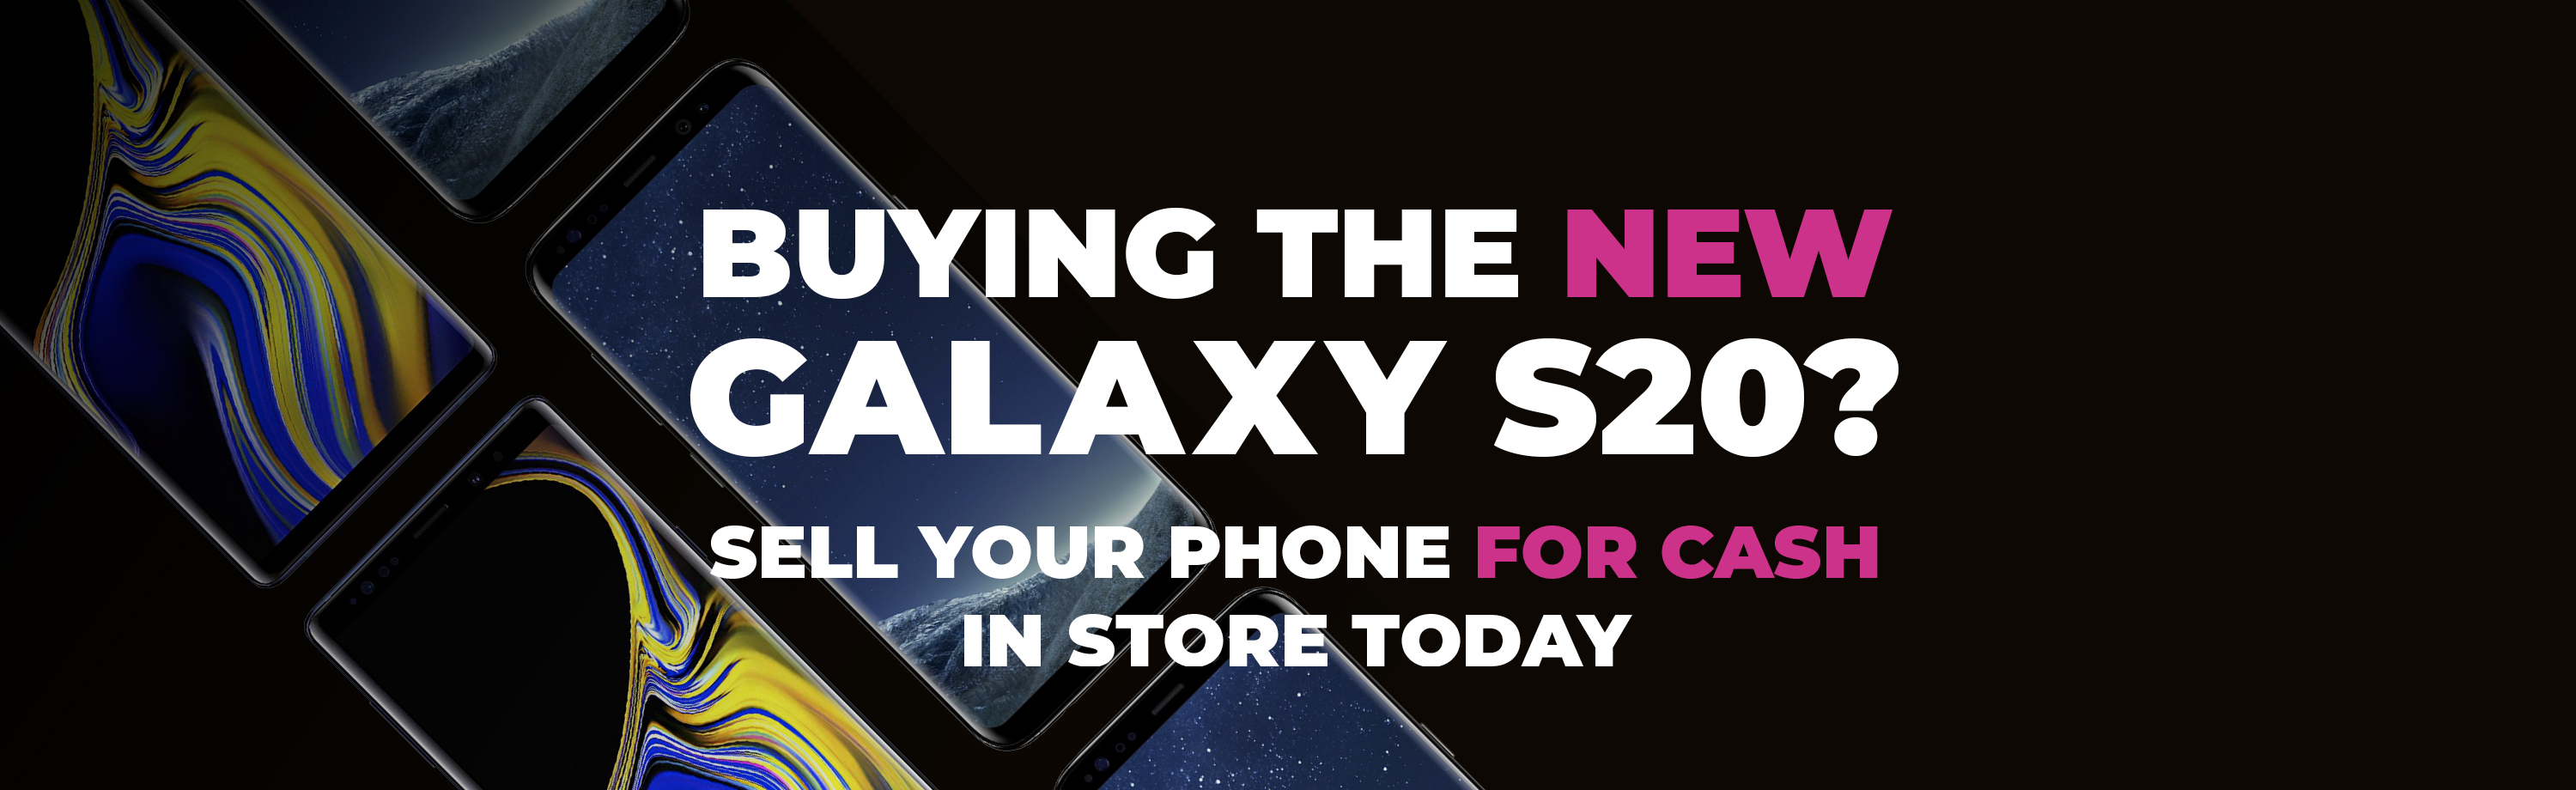 Buying the new Galaxy S20?